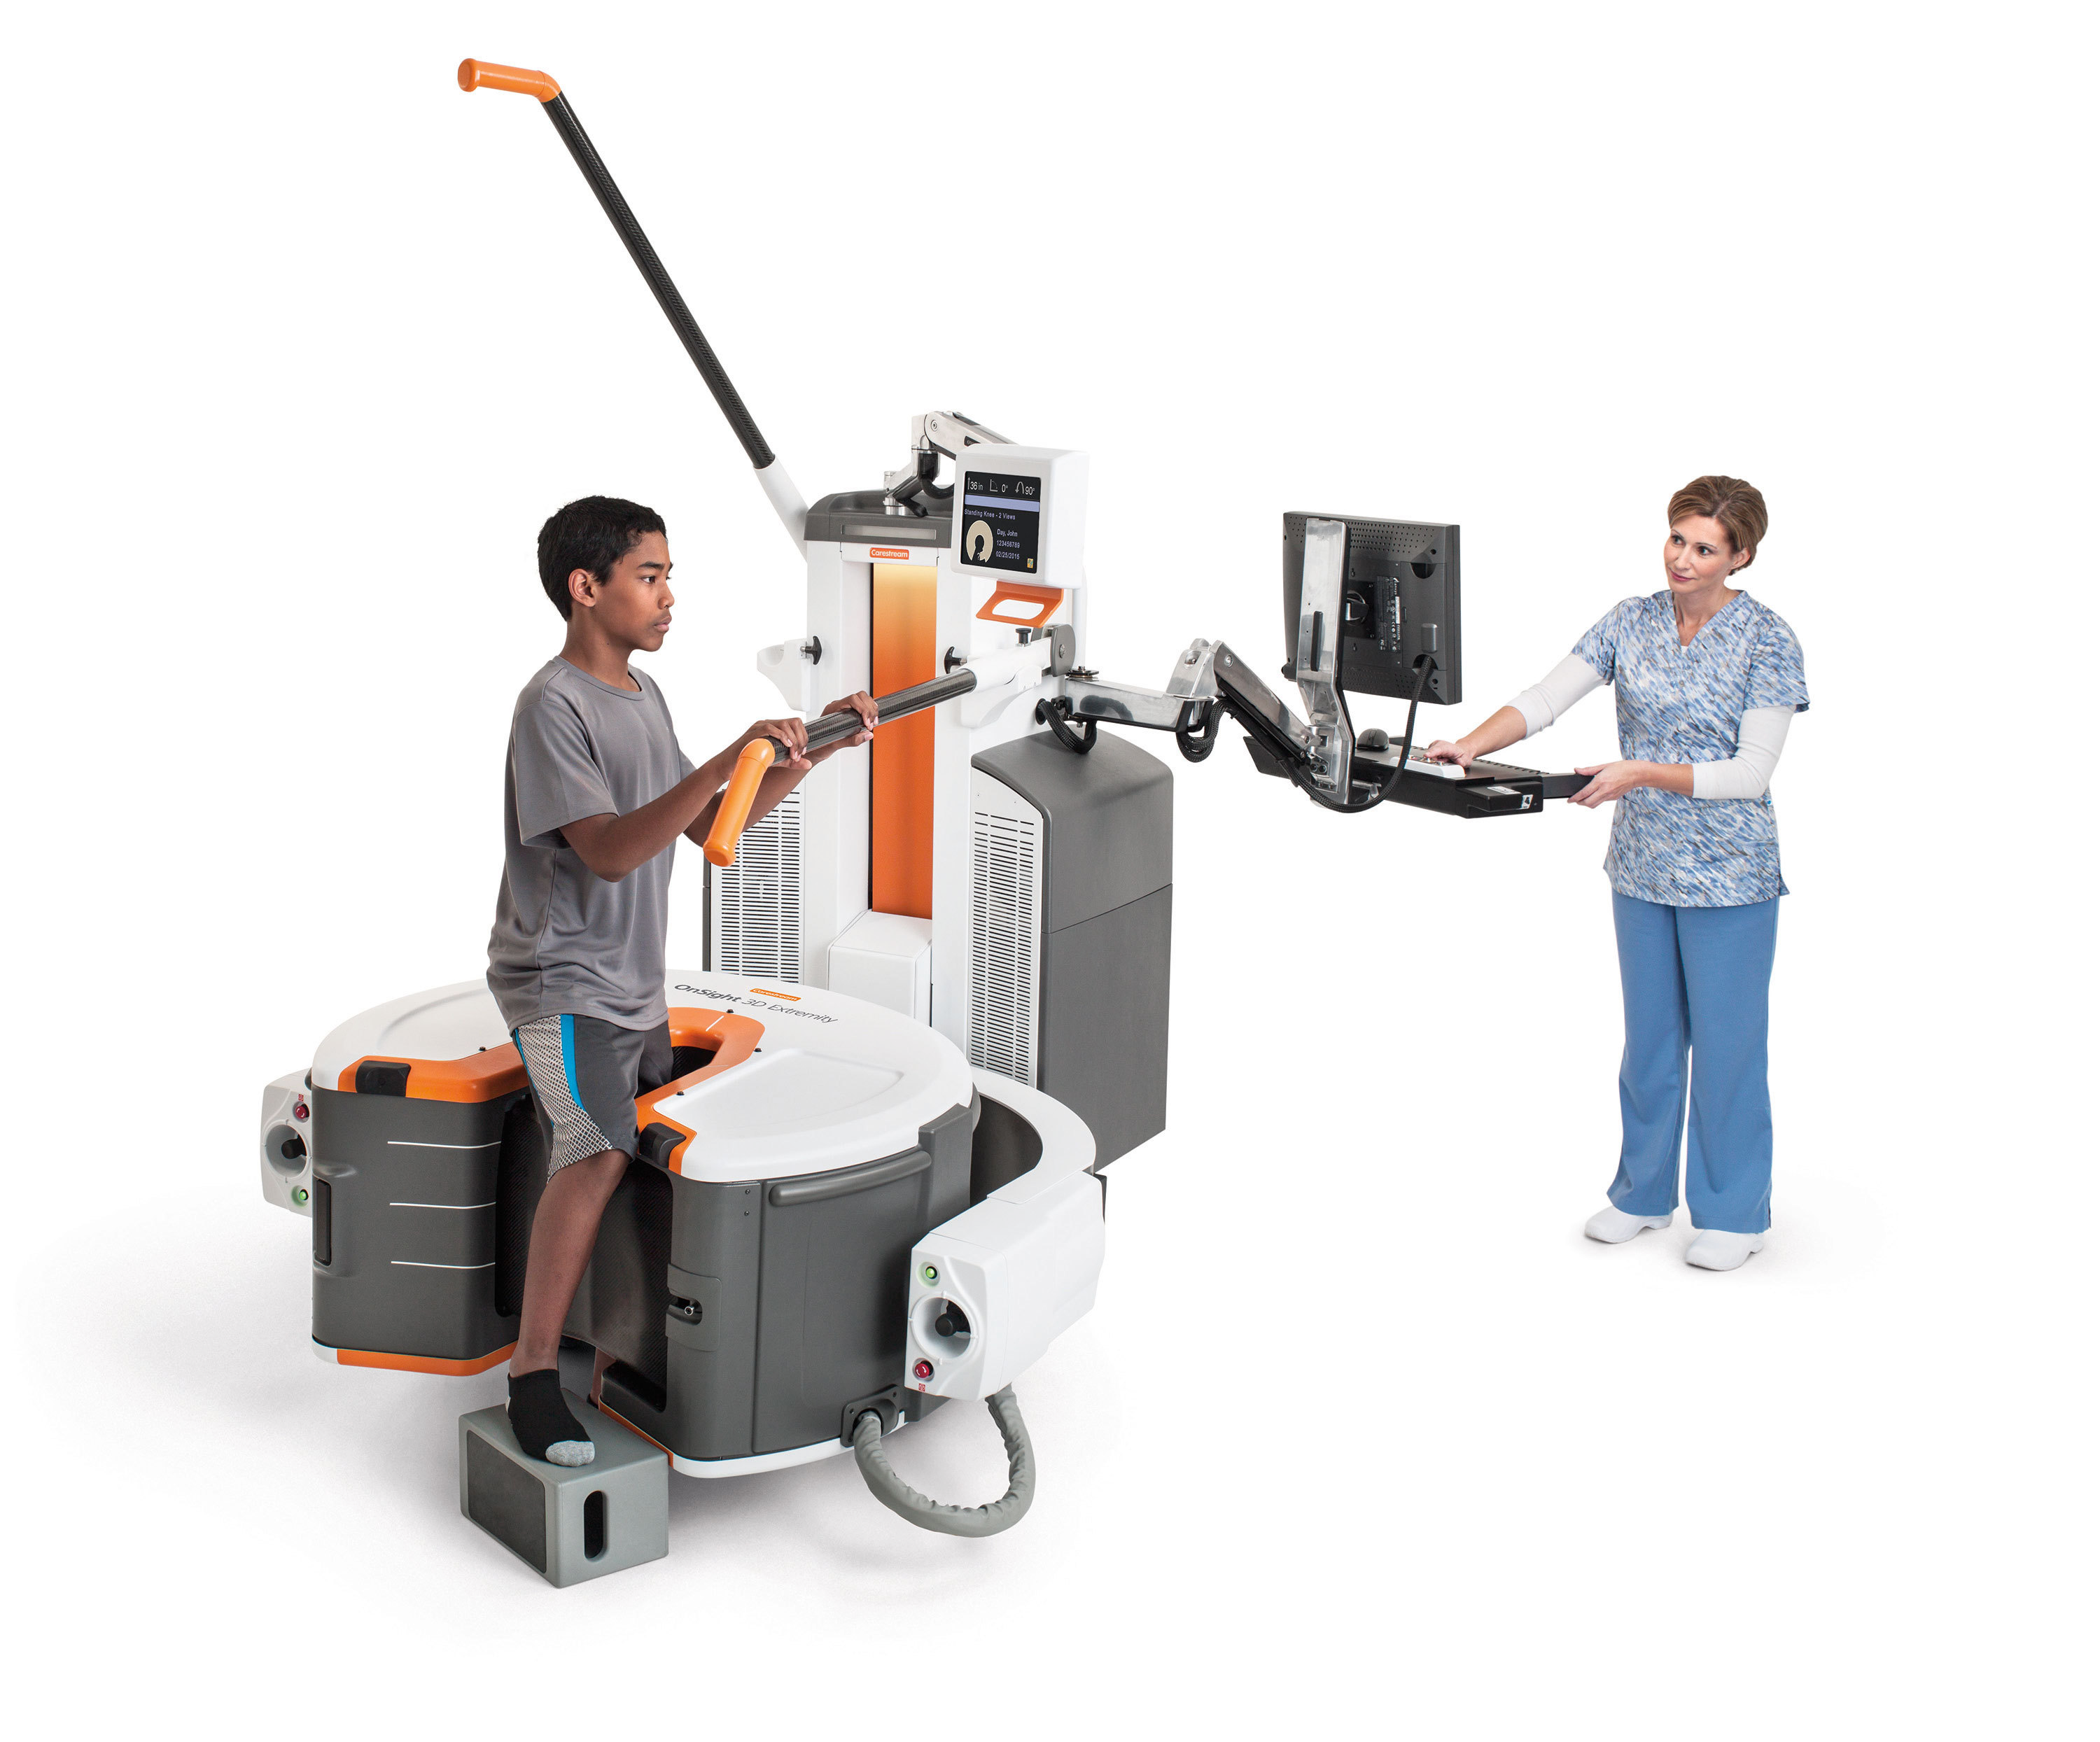 Image: Carestream New Cone Beam 3-D Orthopedic CT Imaging System (Photo courtesy of Carestream).